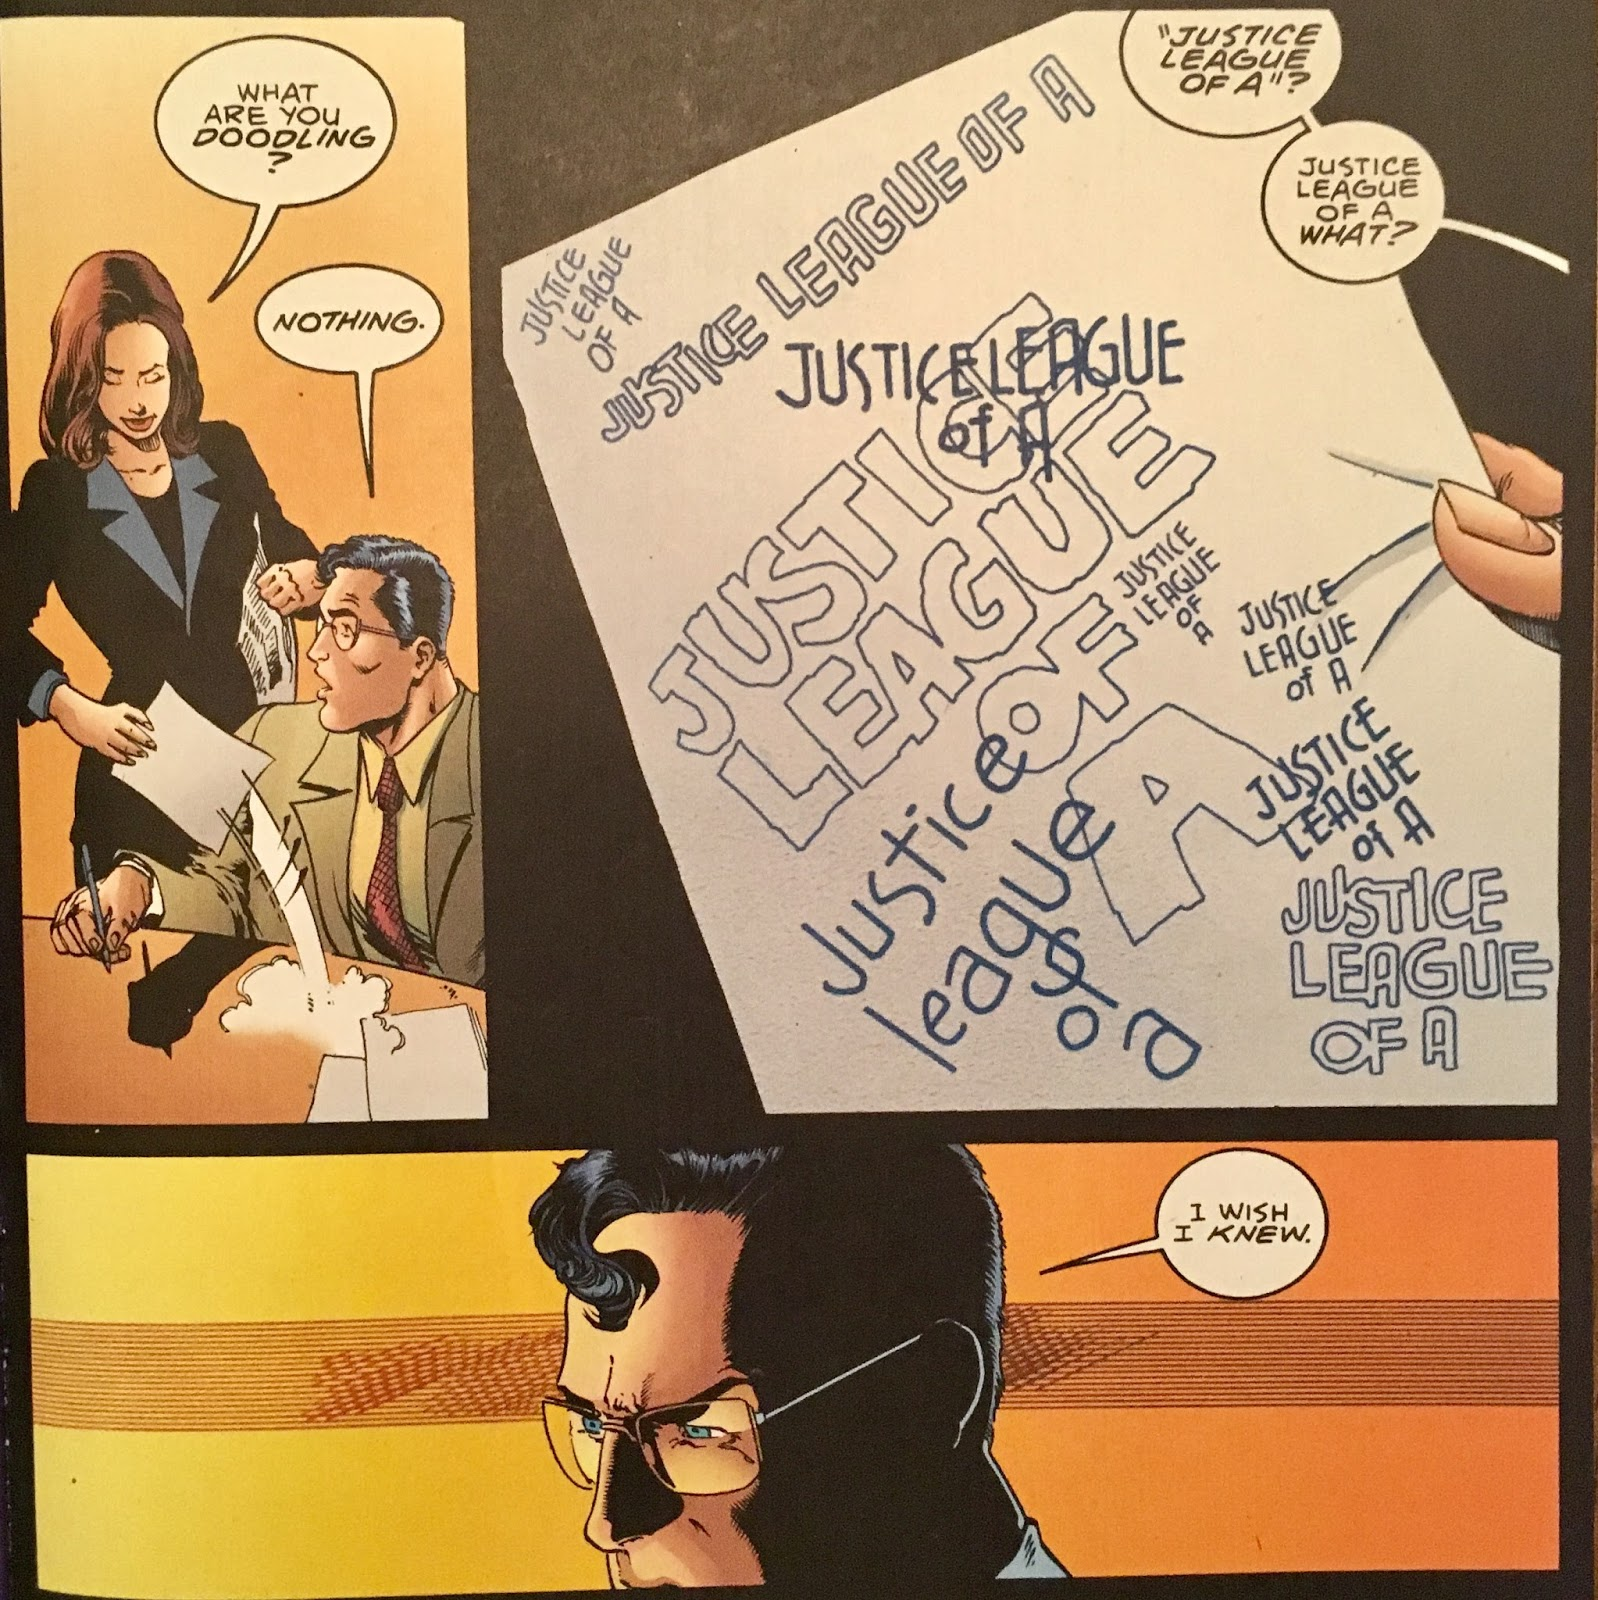 Or Two Clark Has Jotted Down Justice League Of A Over And Again So I Guess Hammond Was Almost Successful In Making The World Remember Eh